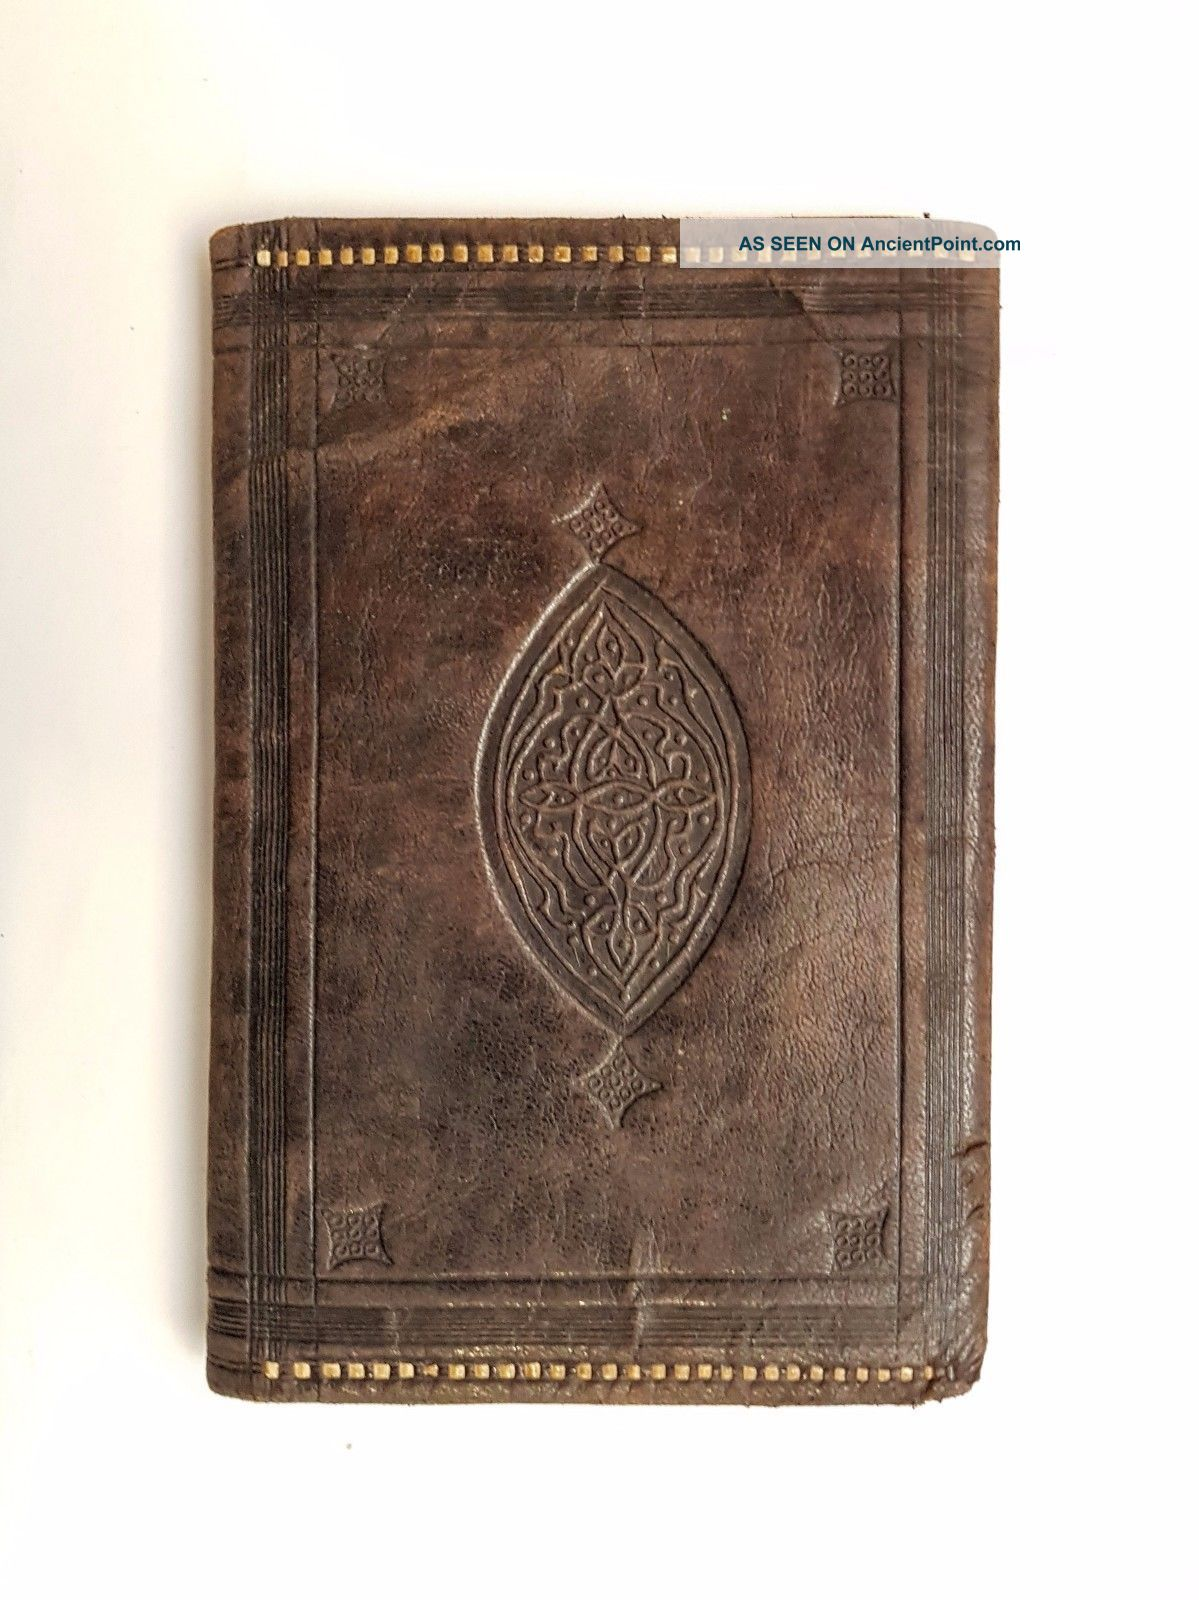 Old True Antique Ottoman Empire Islamic Turkish Leather Wallet 1900s Islamic photo